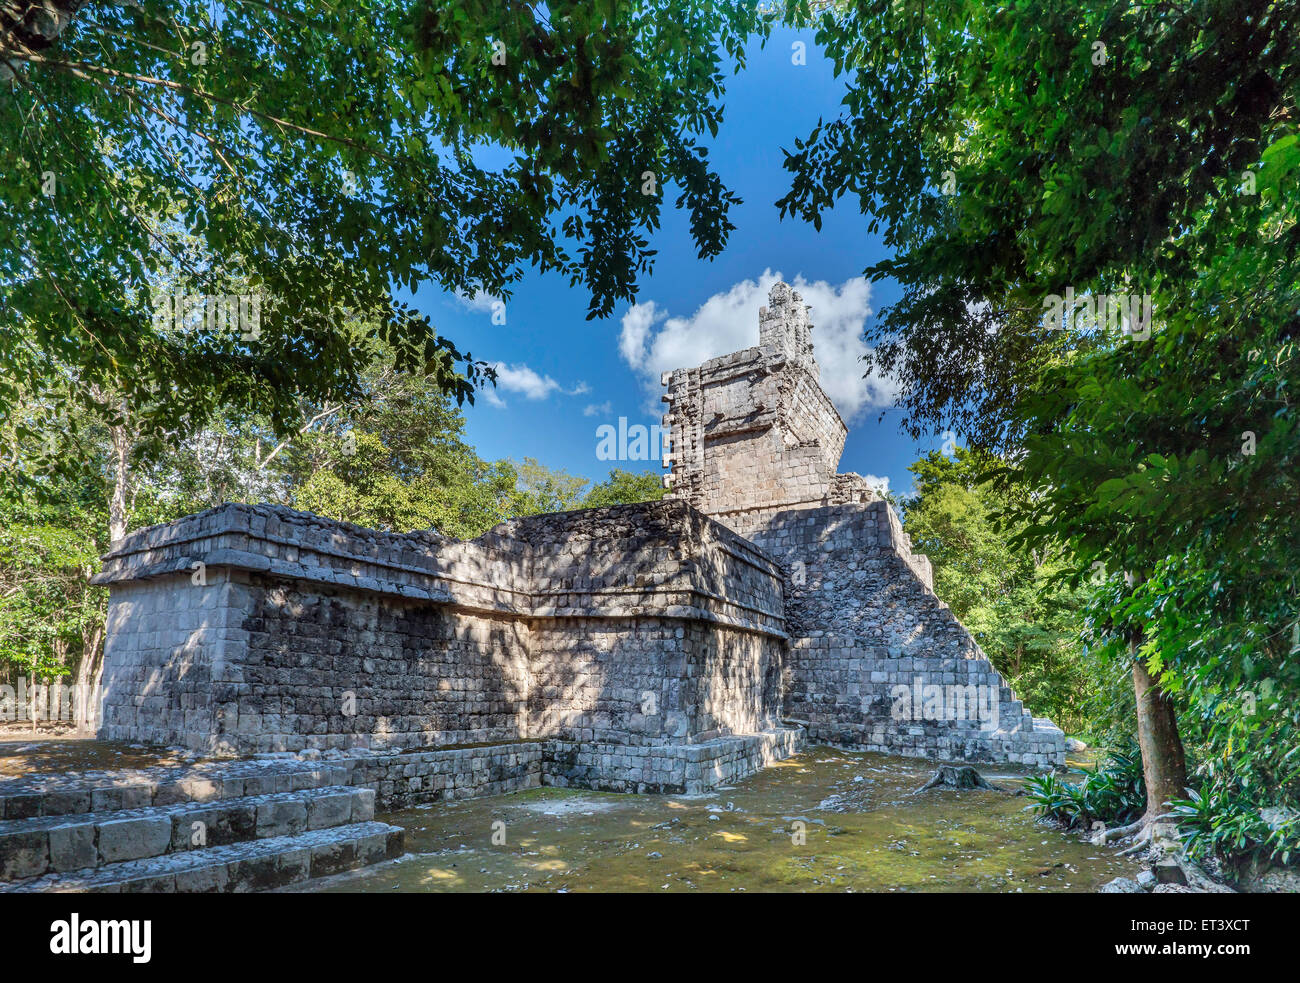 Temple I, Maya ruins at El Tabasqueno archaeological site, near Hopelchen, Yucatan Peninsula, Campeche state, Mexico - Stock Image